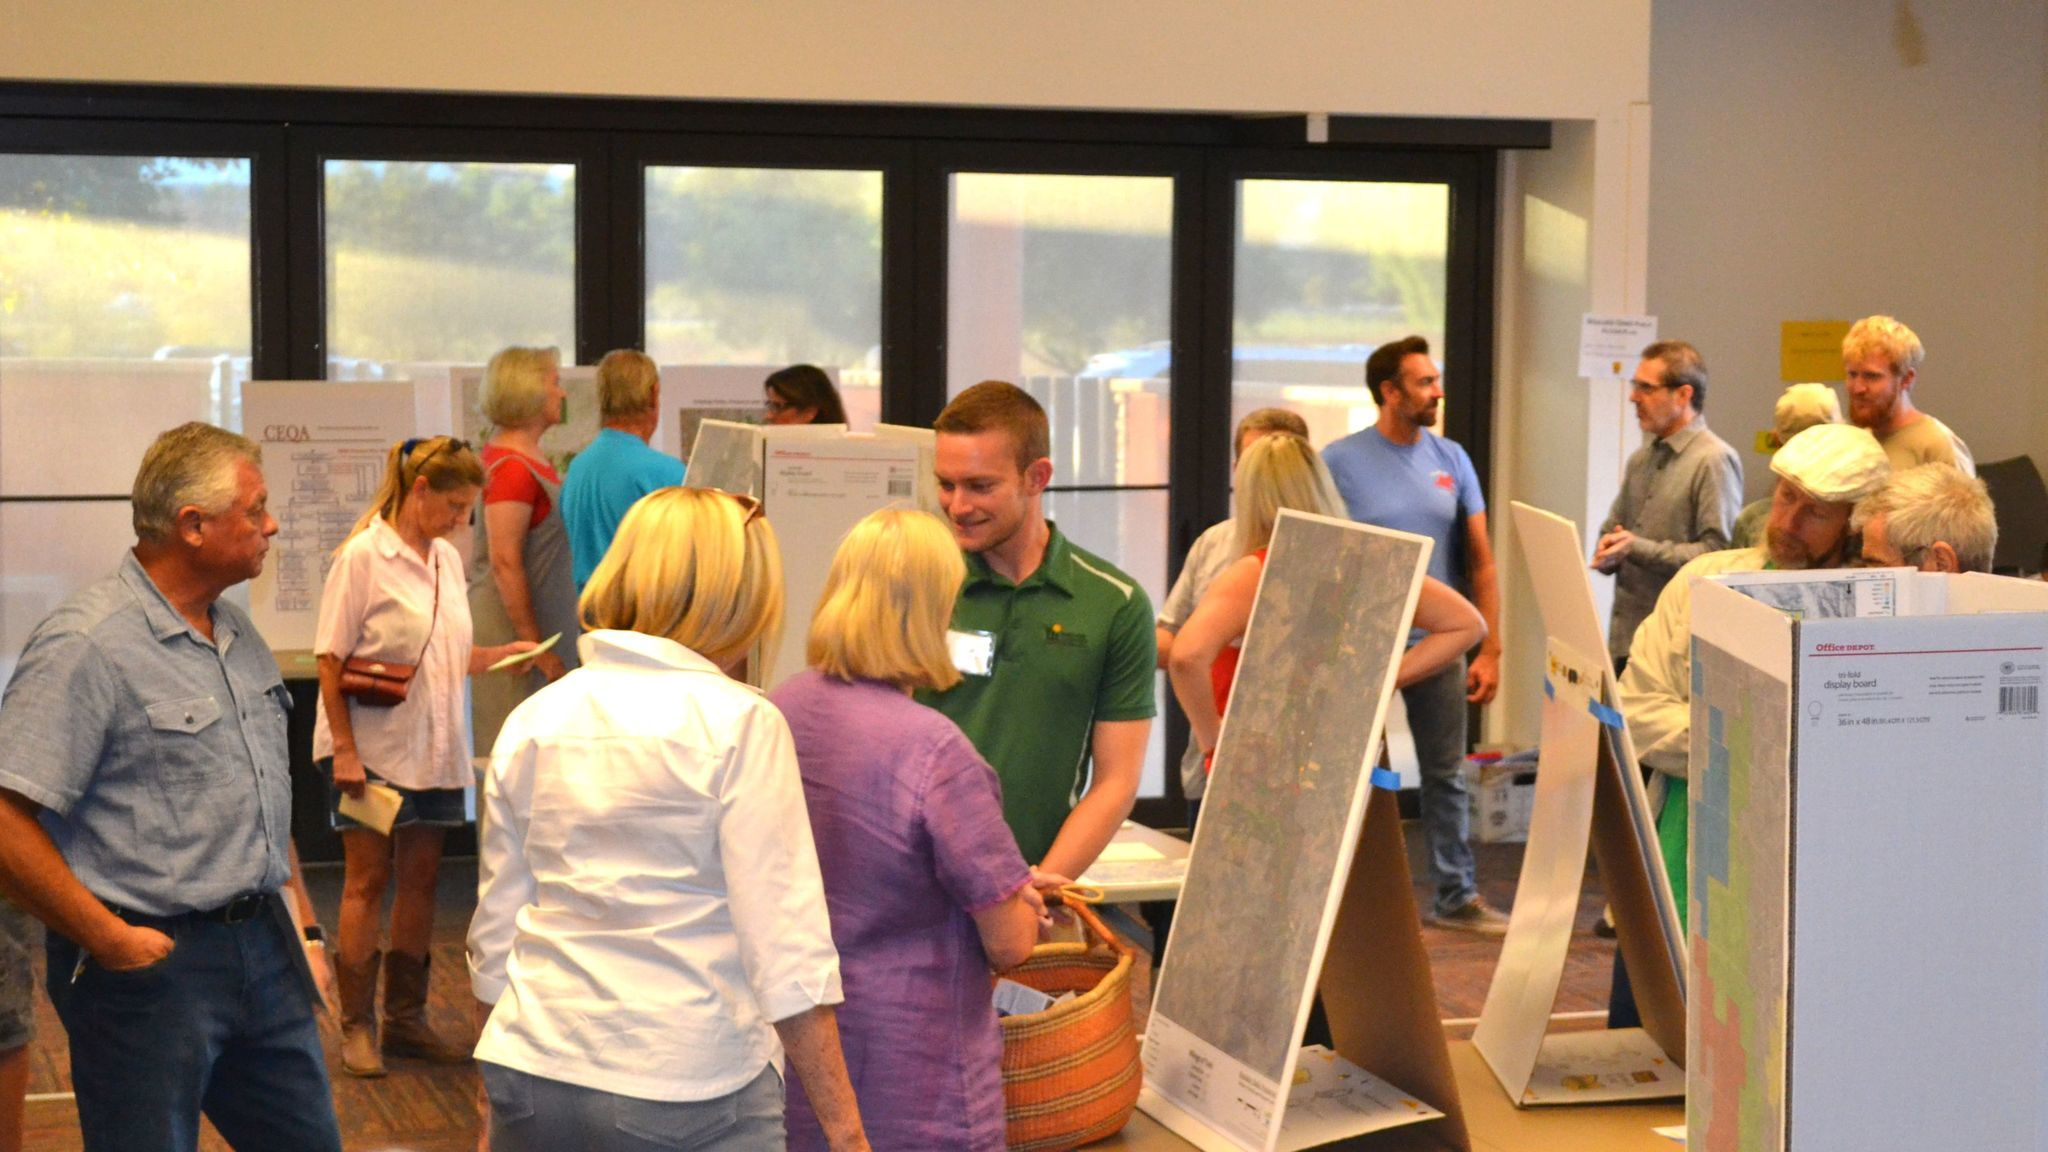 Residents view the county's proposed trail plan for Boulder Oaks Preserve.